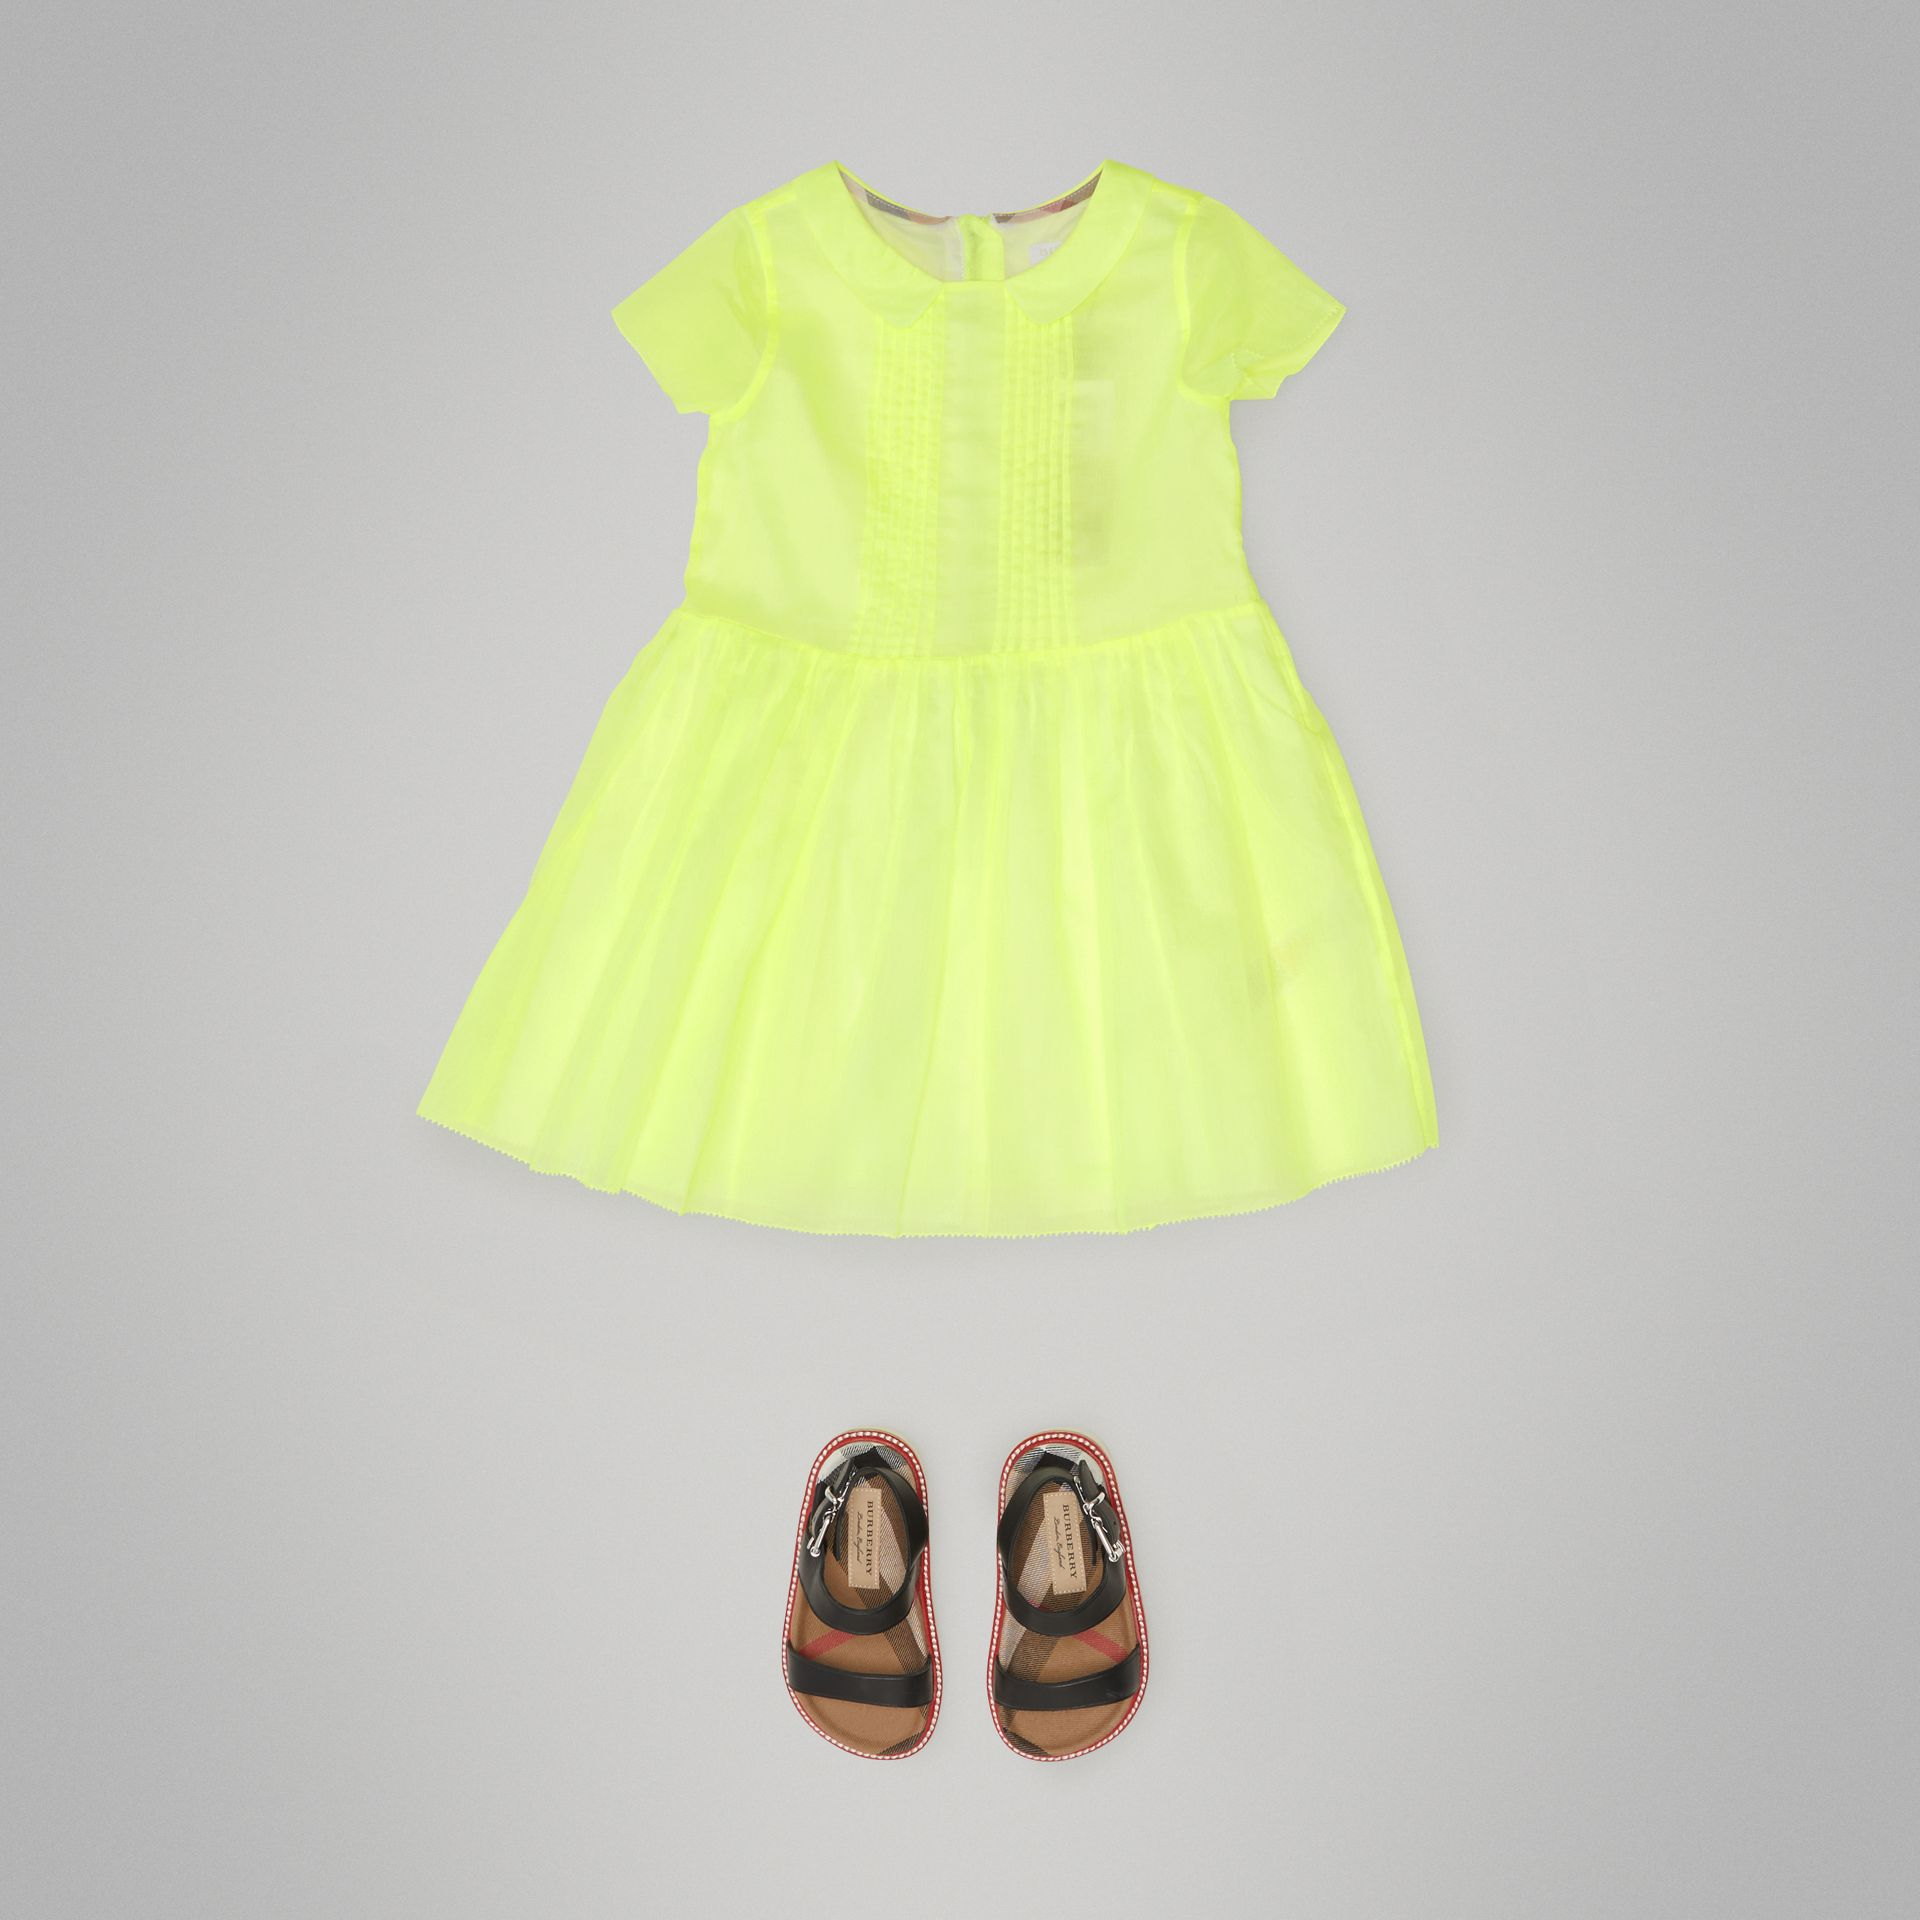 Pintuck Detail Cotton Voile Dress in Neon Yellow - Children | Burberry - gallery image 2